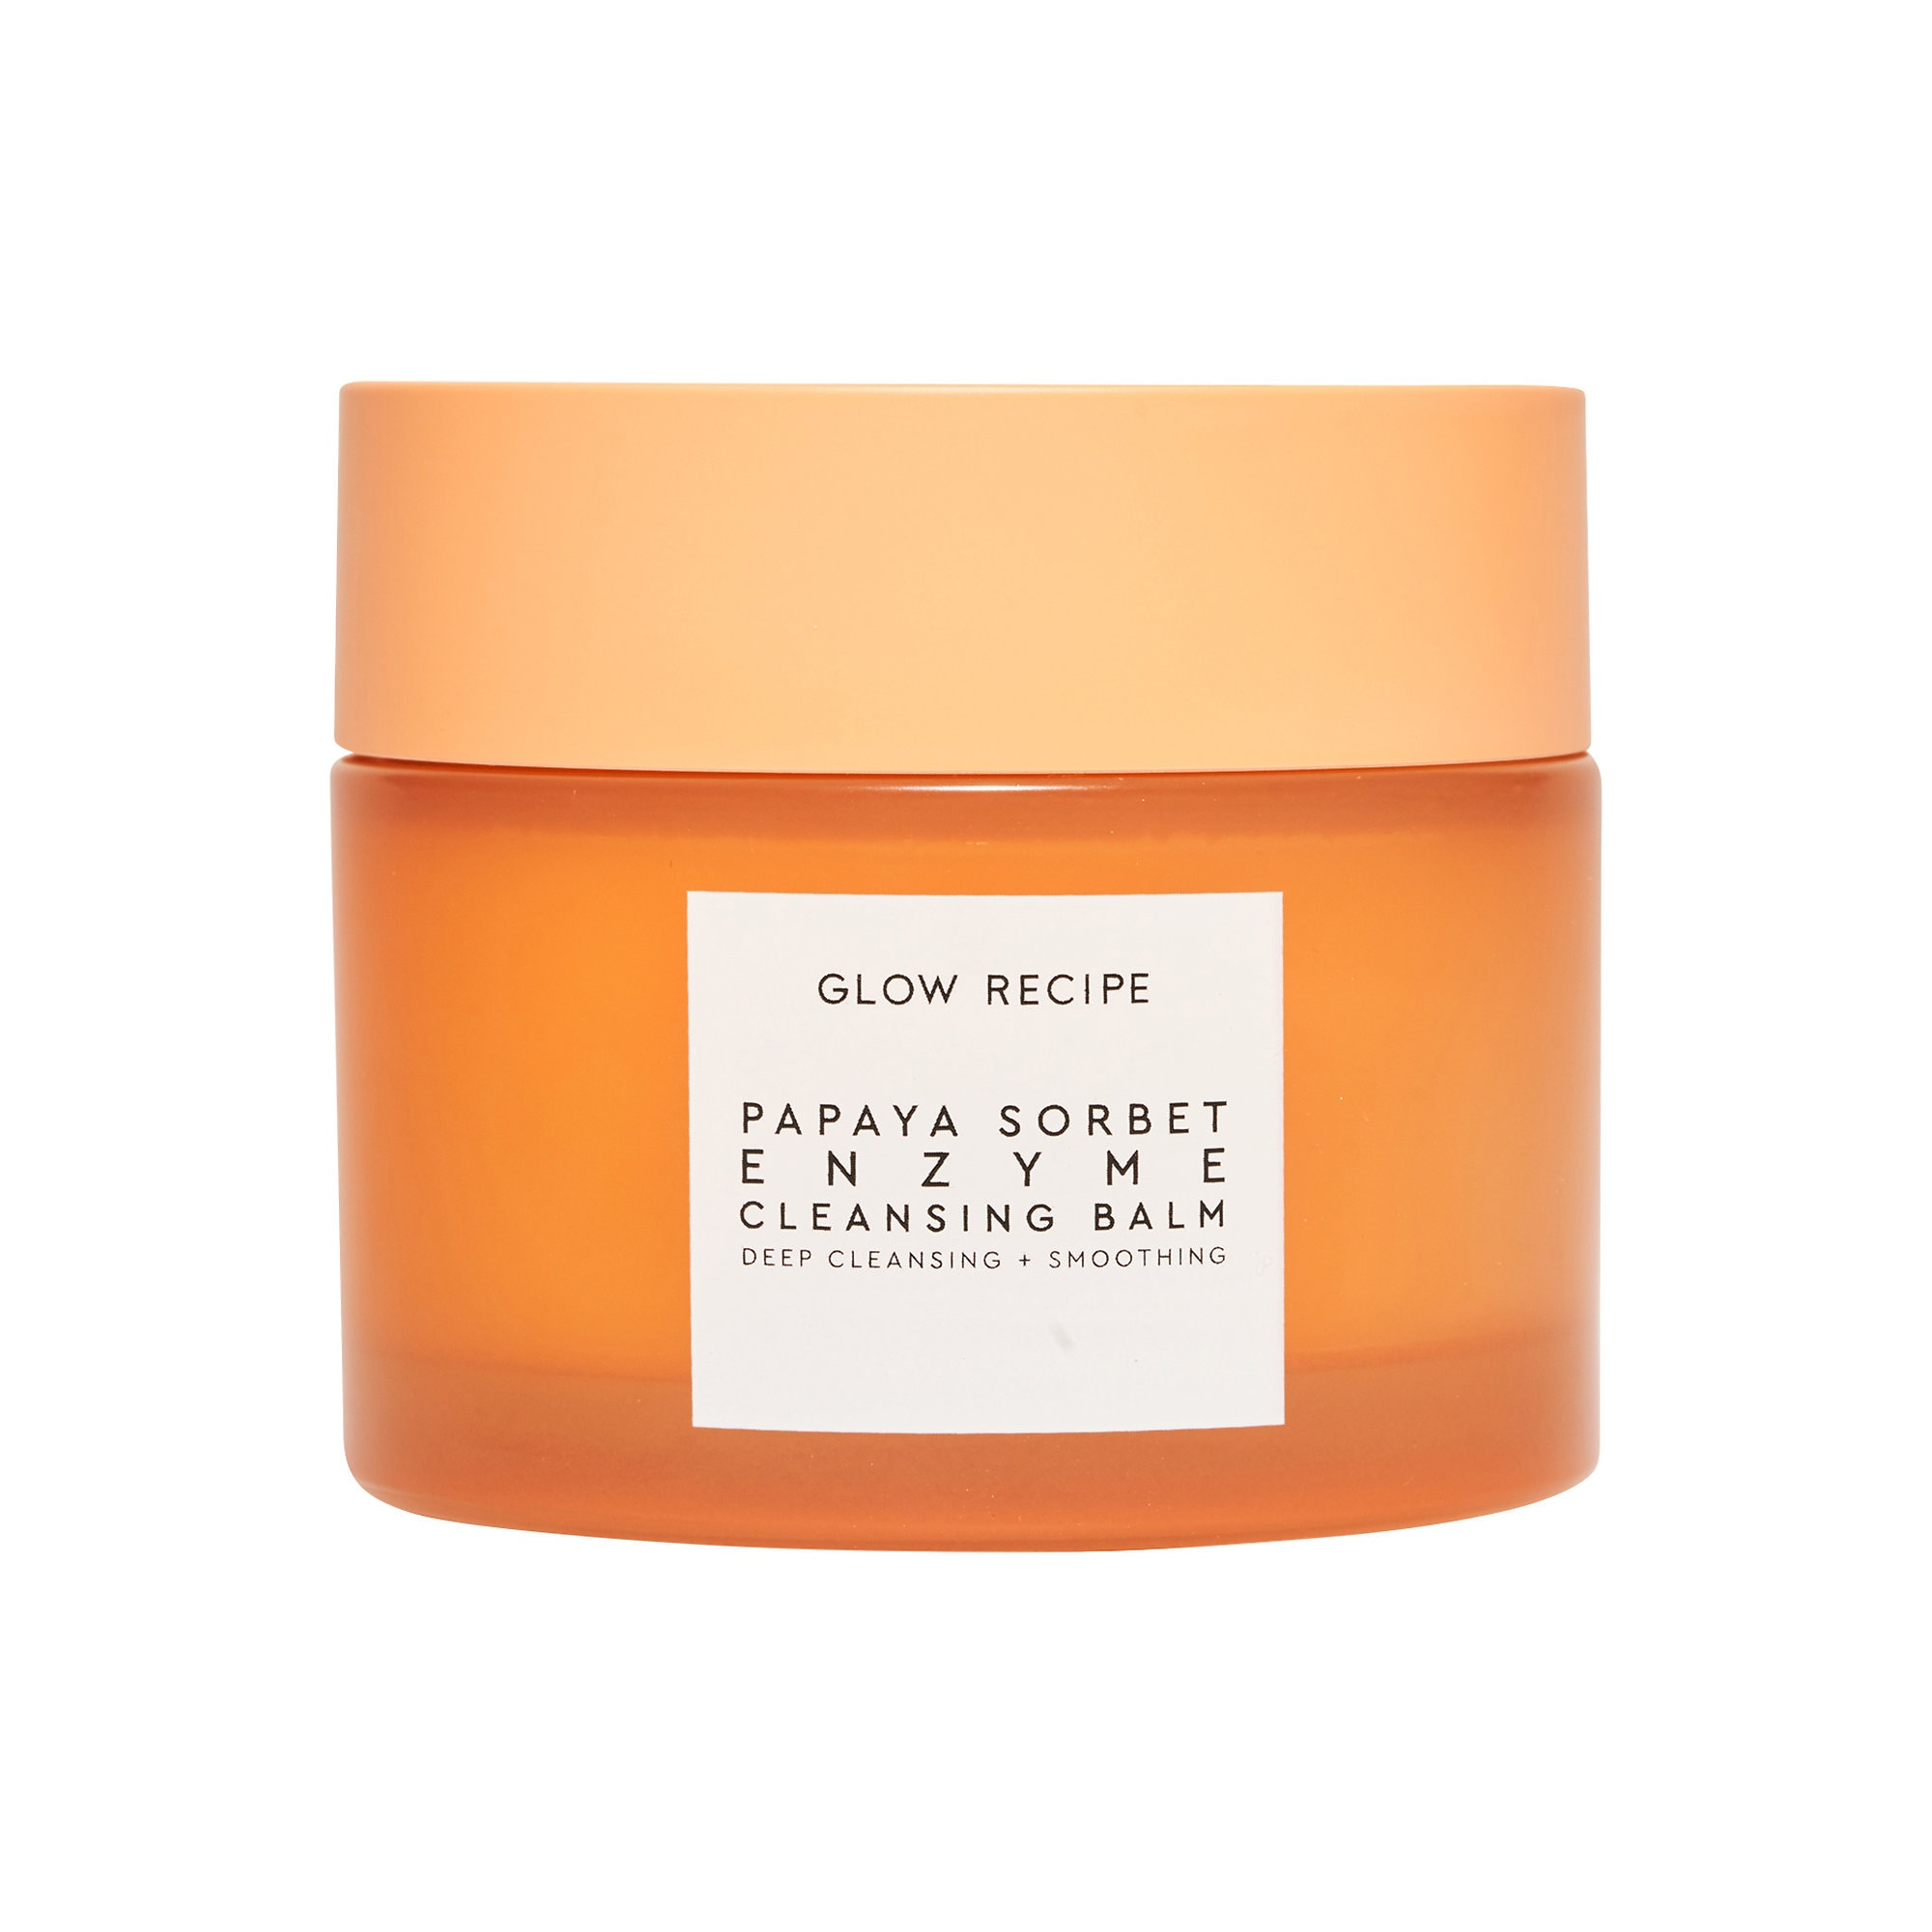 Glow Recipe - Papaya Sorbet Smoothing Enzyme Cleansing Balm